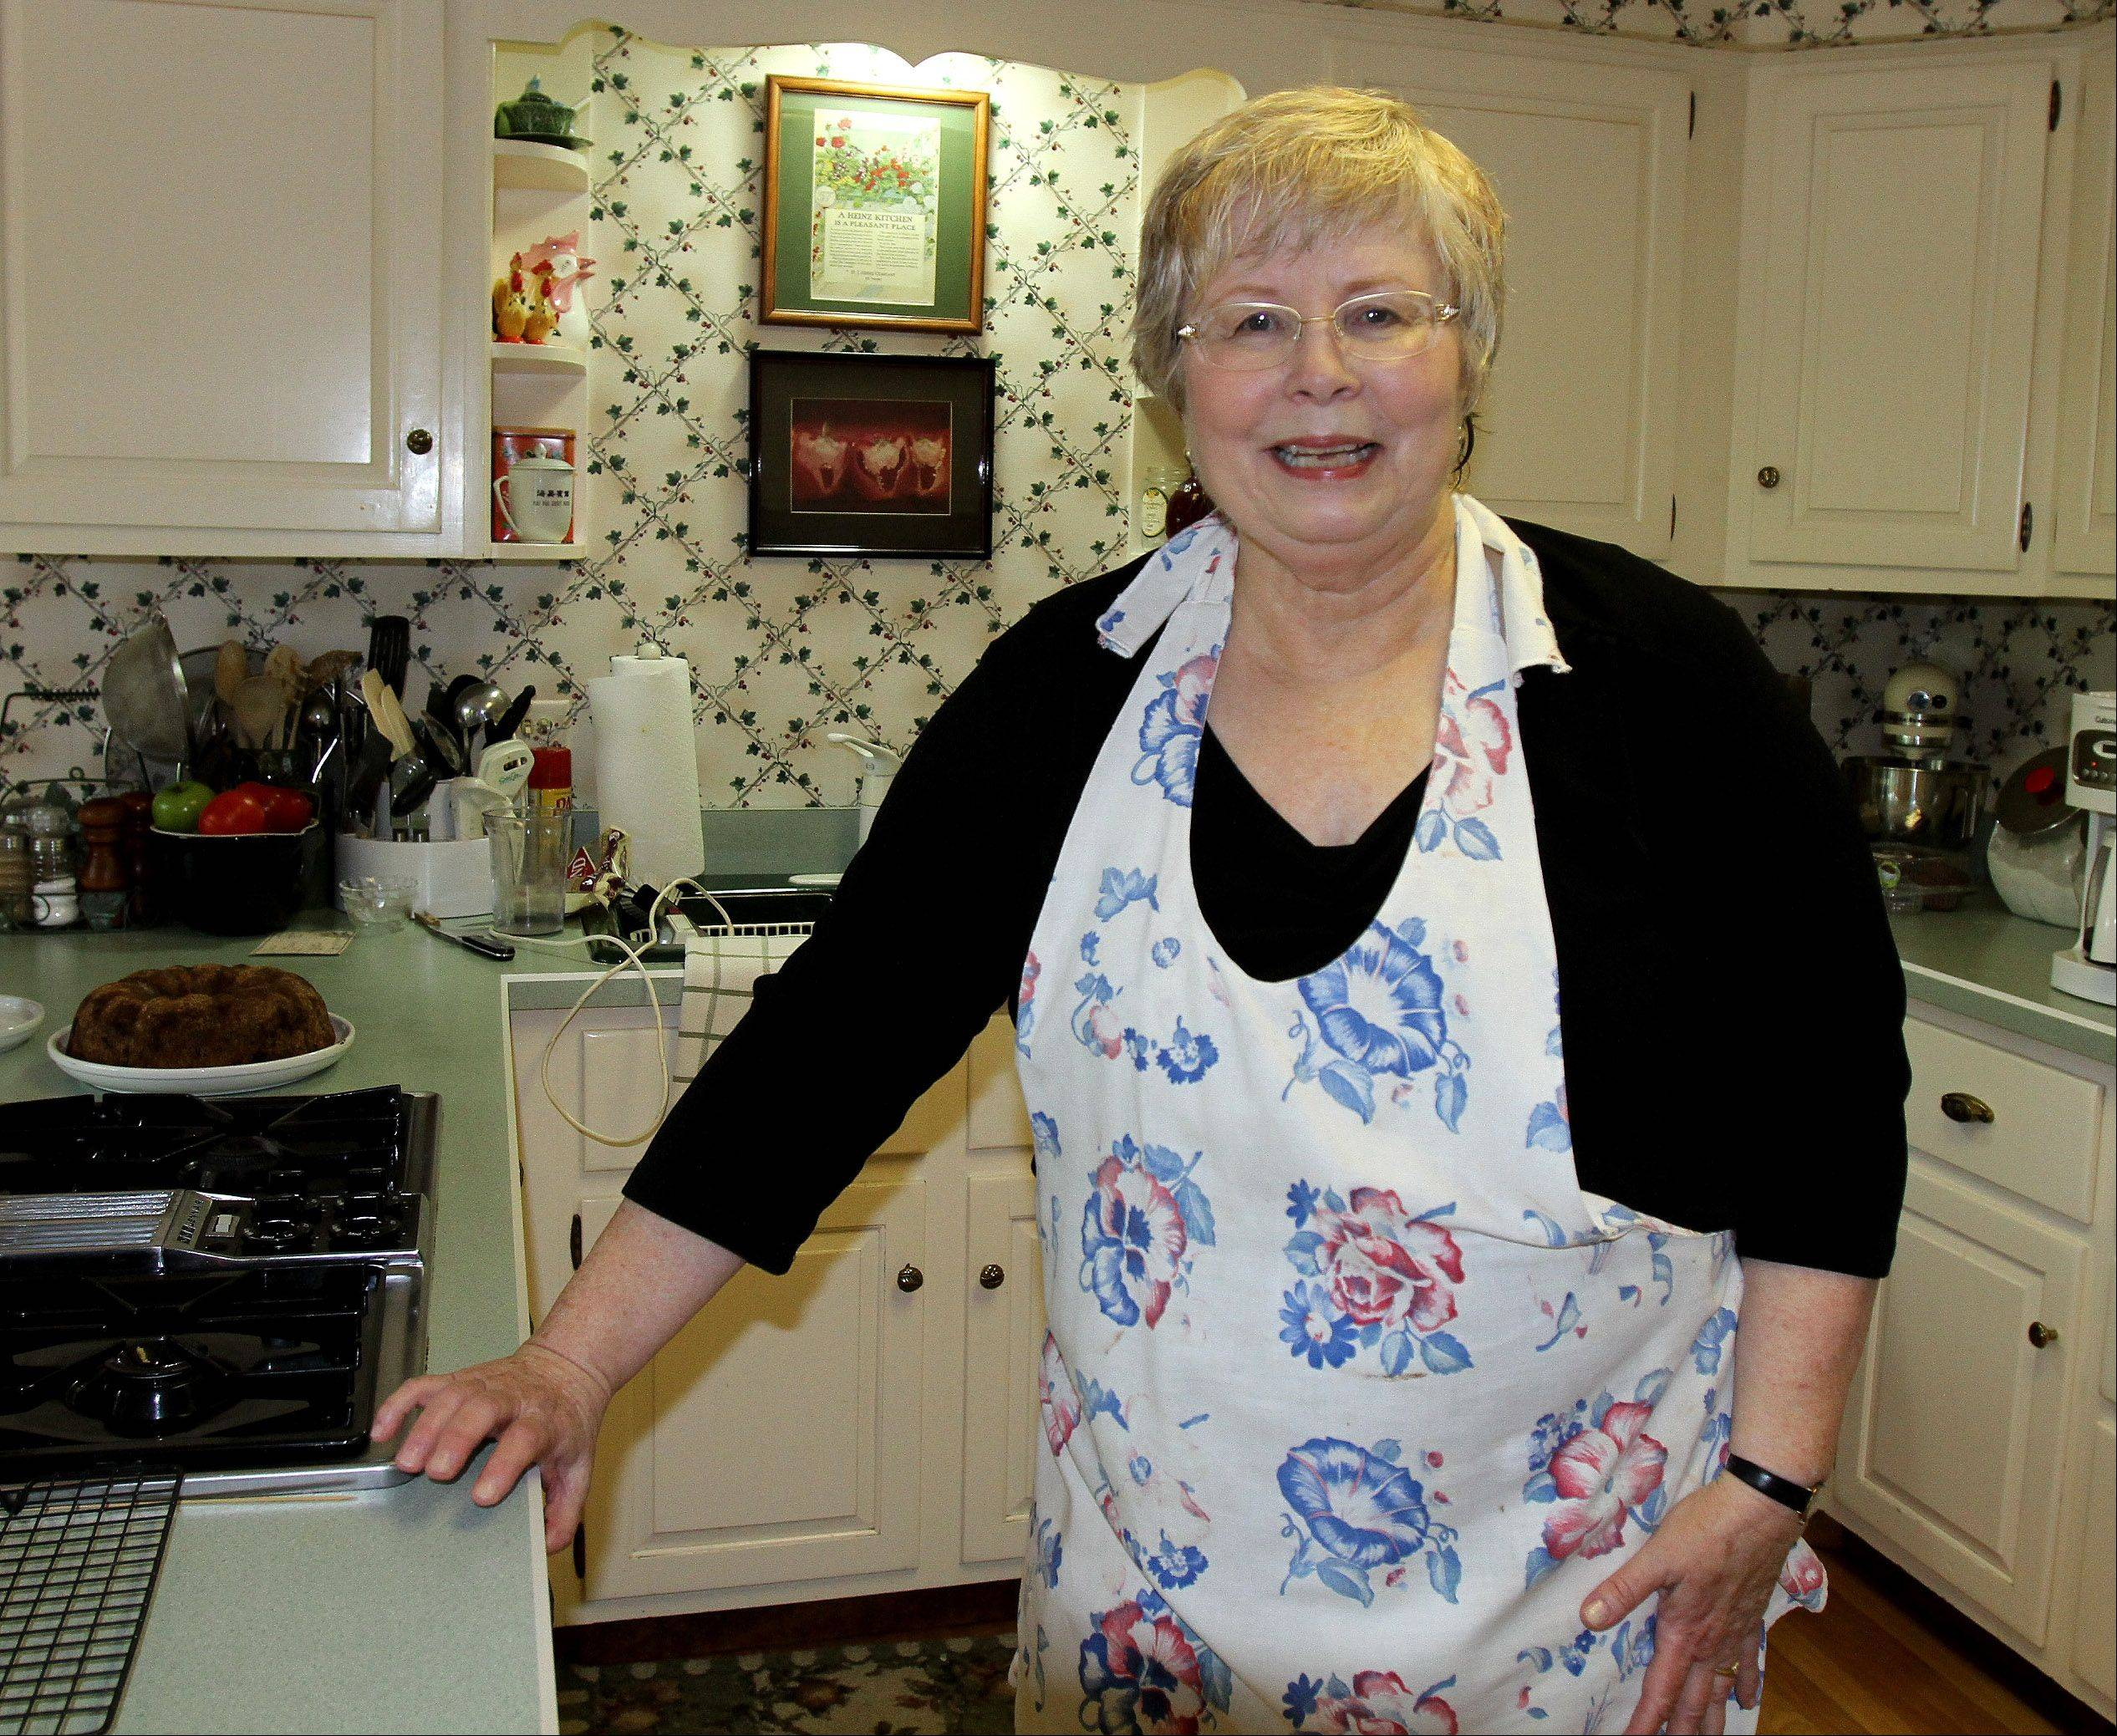 Sue Waskelis of Lisle loves trying new recipes and counts Cook's Illustrated magazine as her go-to source.